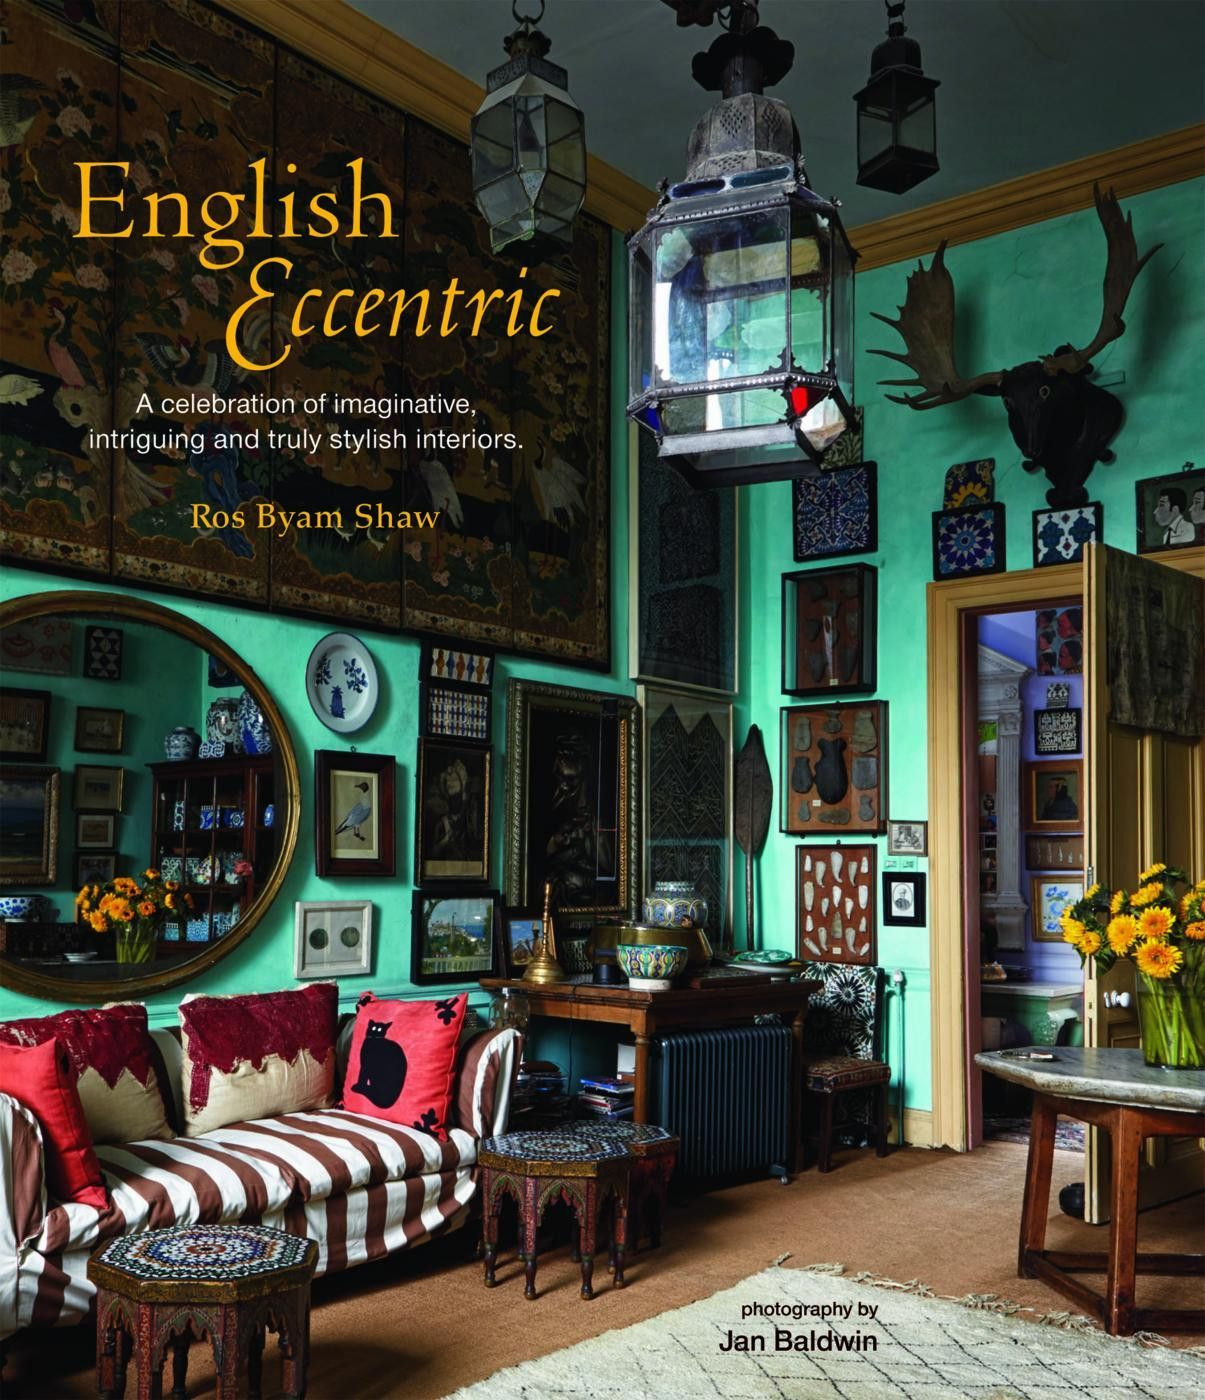 The English Eccentric Ros Byam Shaw: Interior Design Books